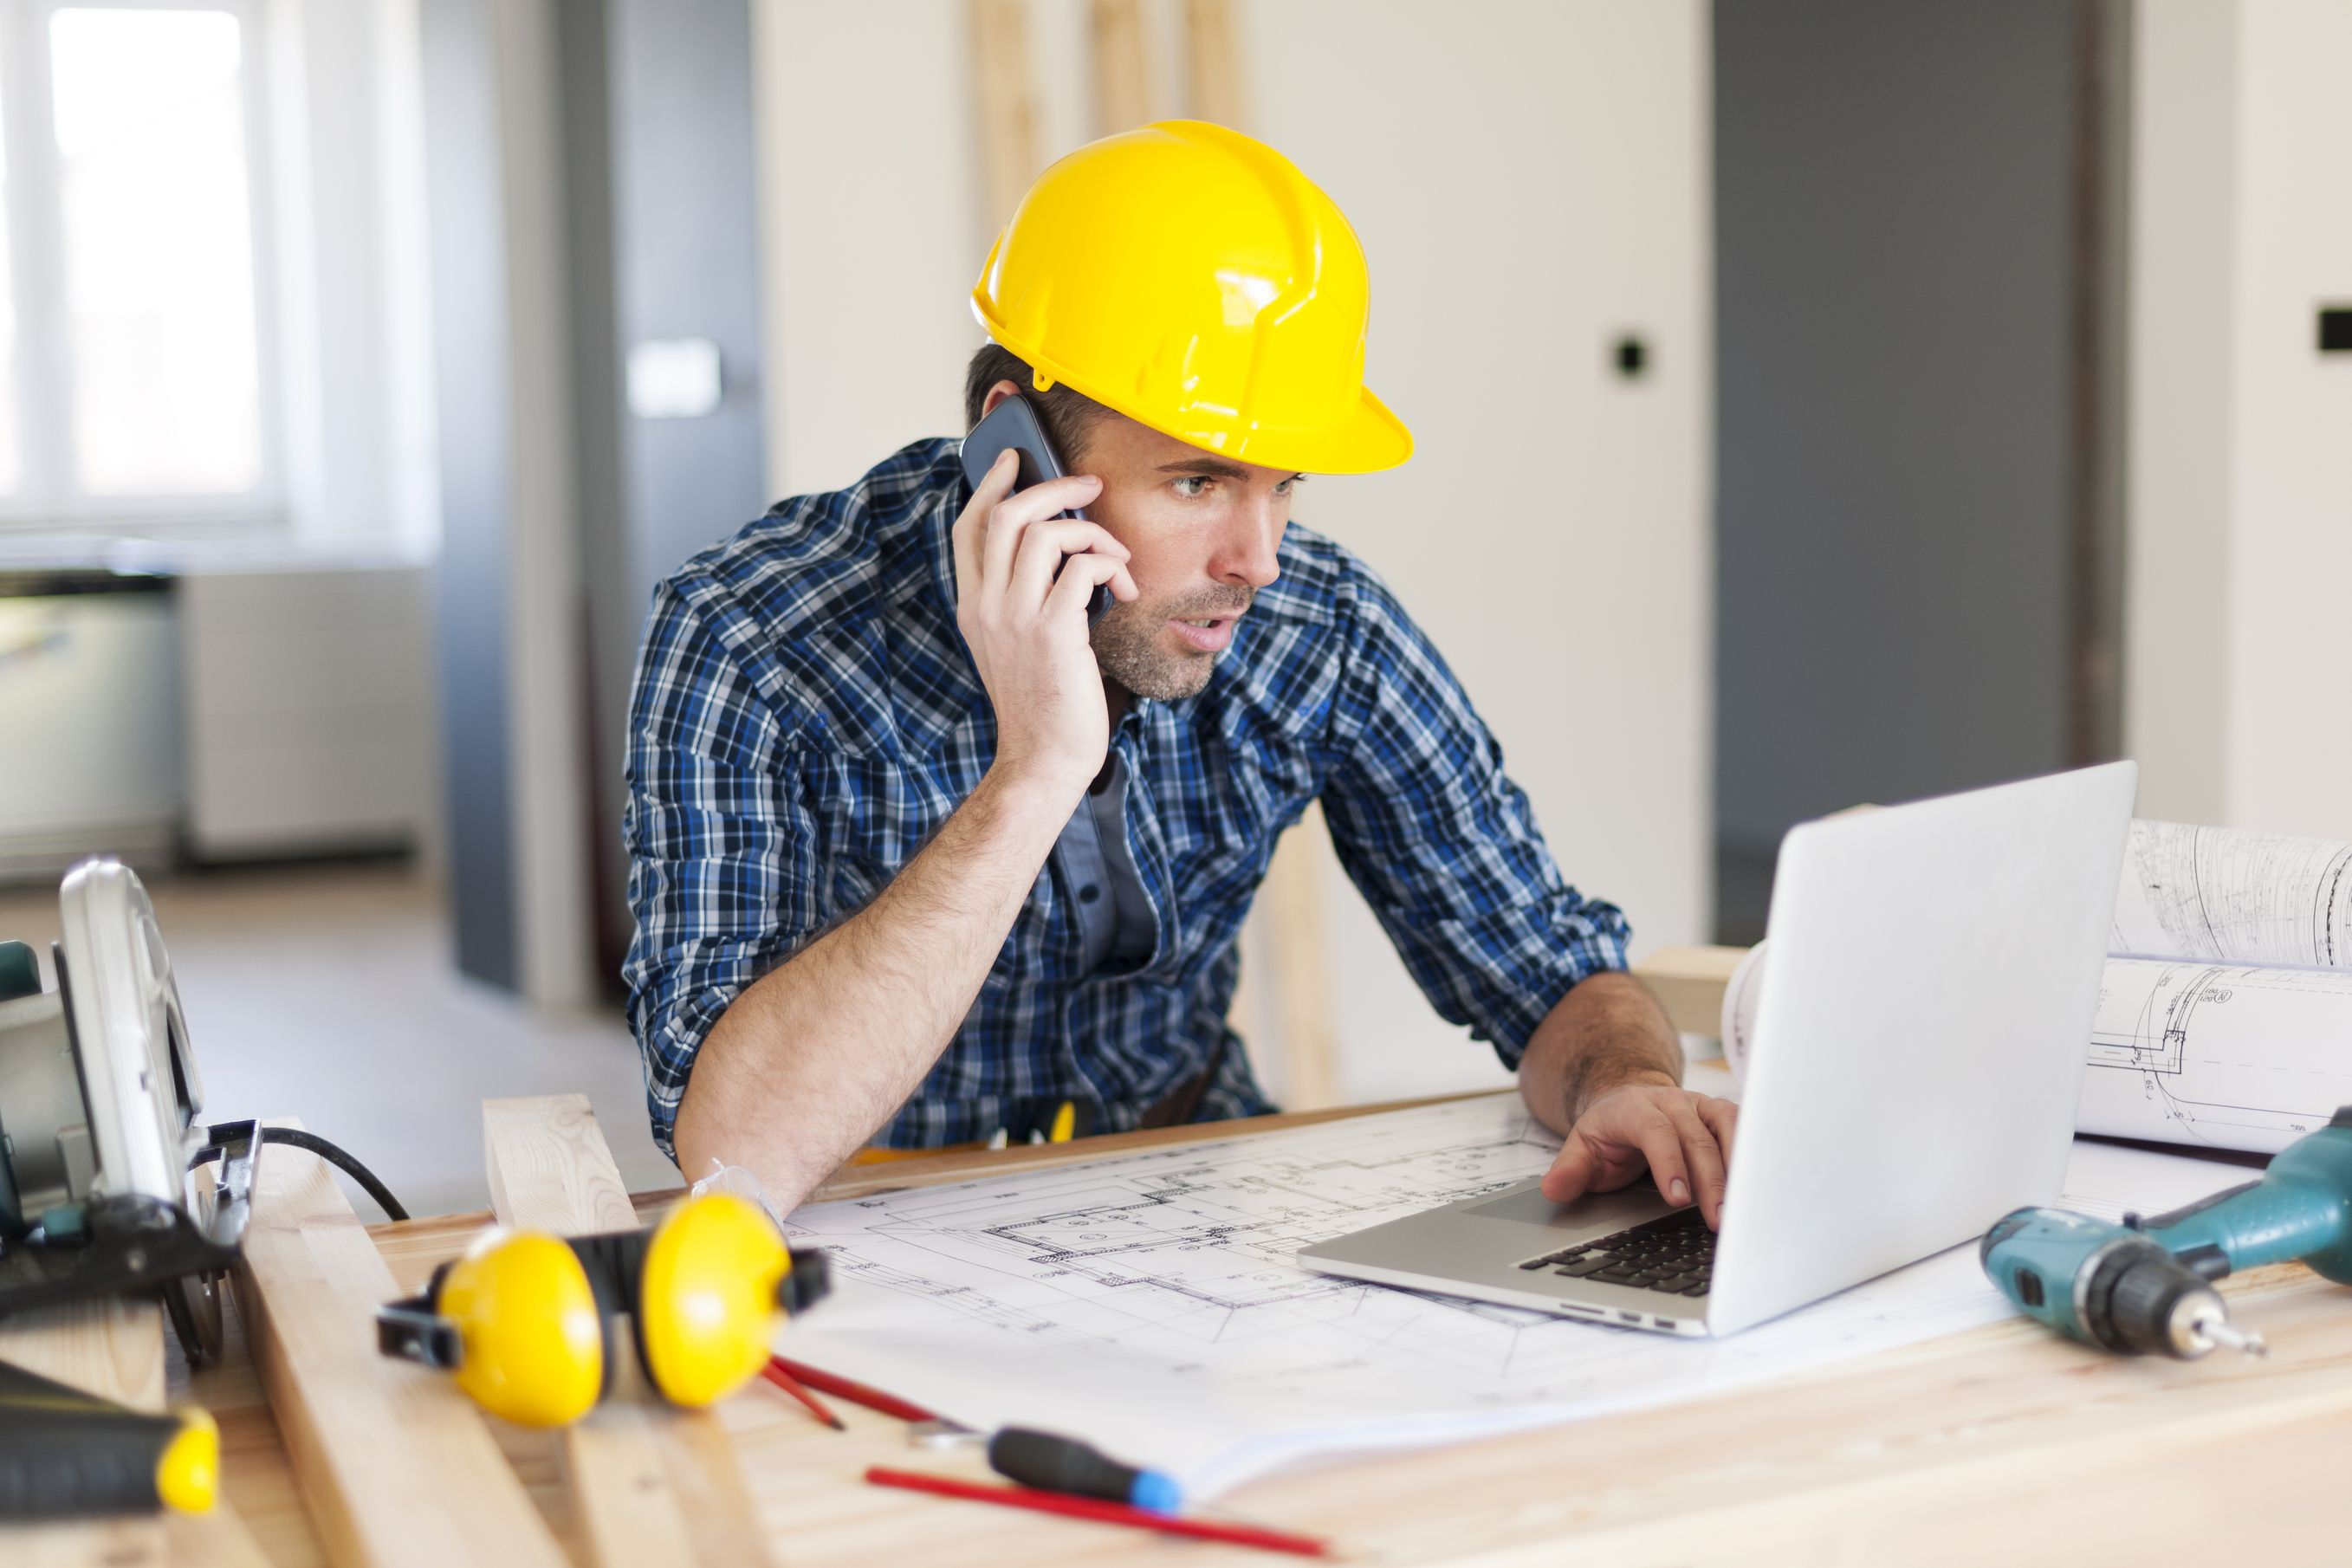 Construction worker using mobile phone and laptop